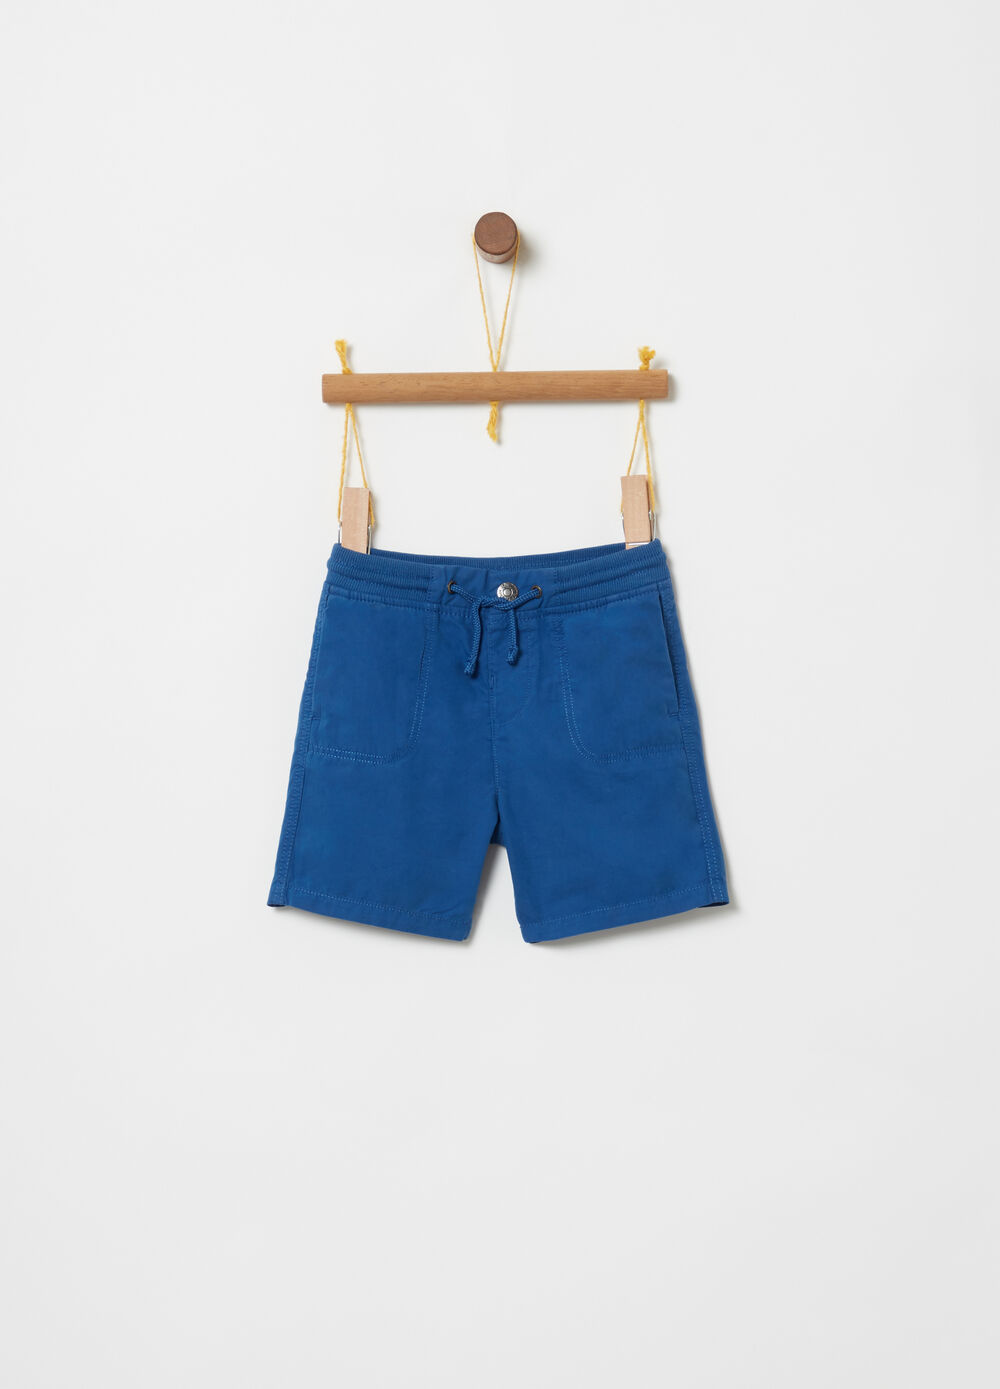 Shorts with ribbing, drawstring and pockets